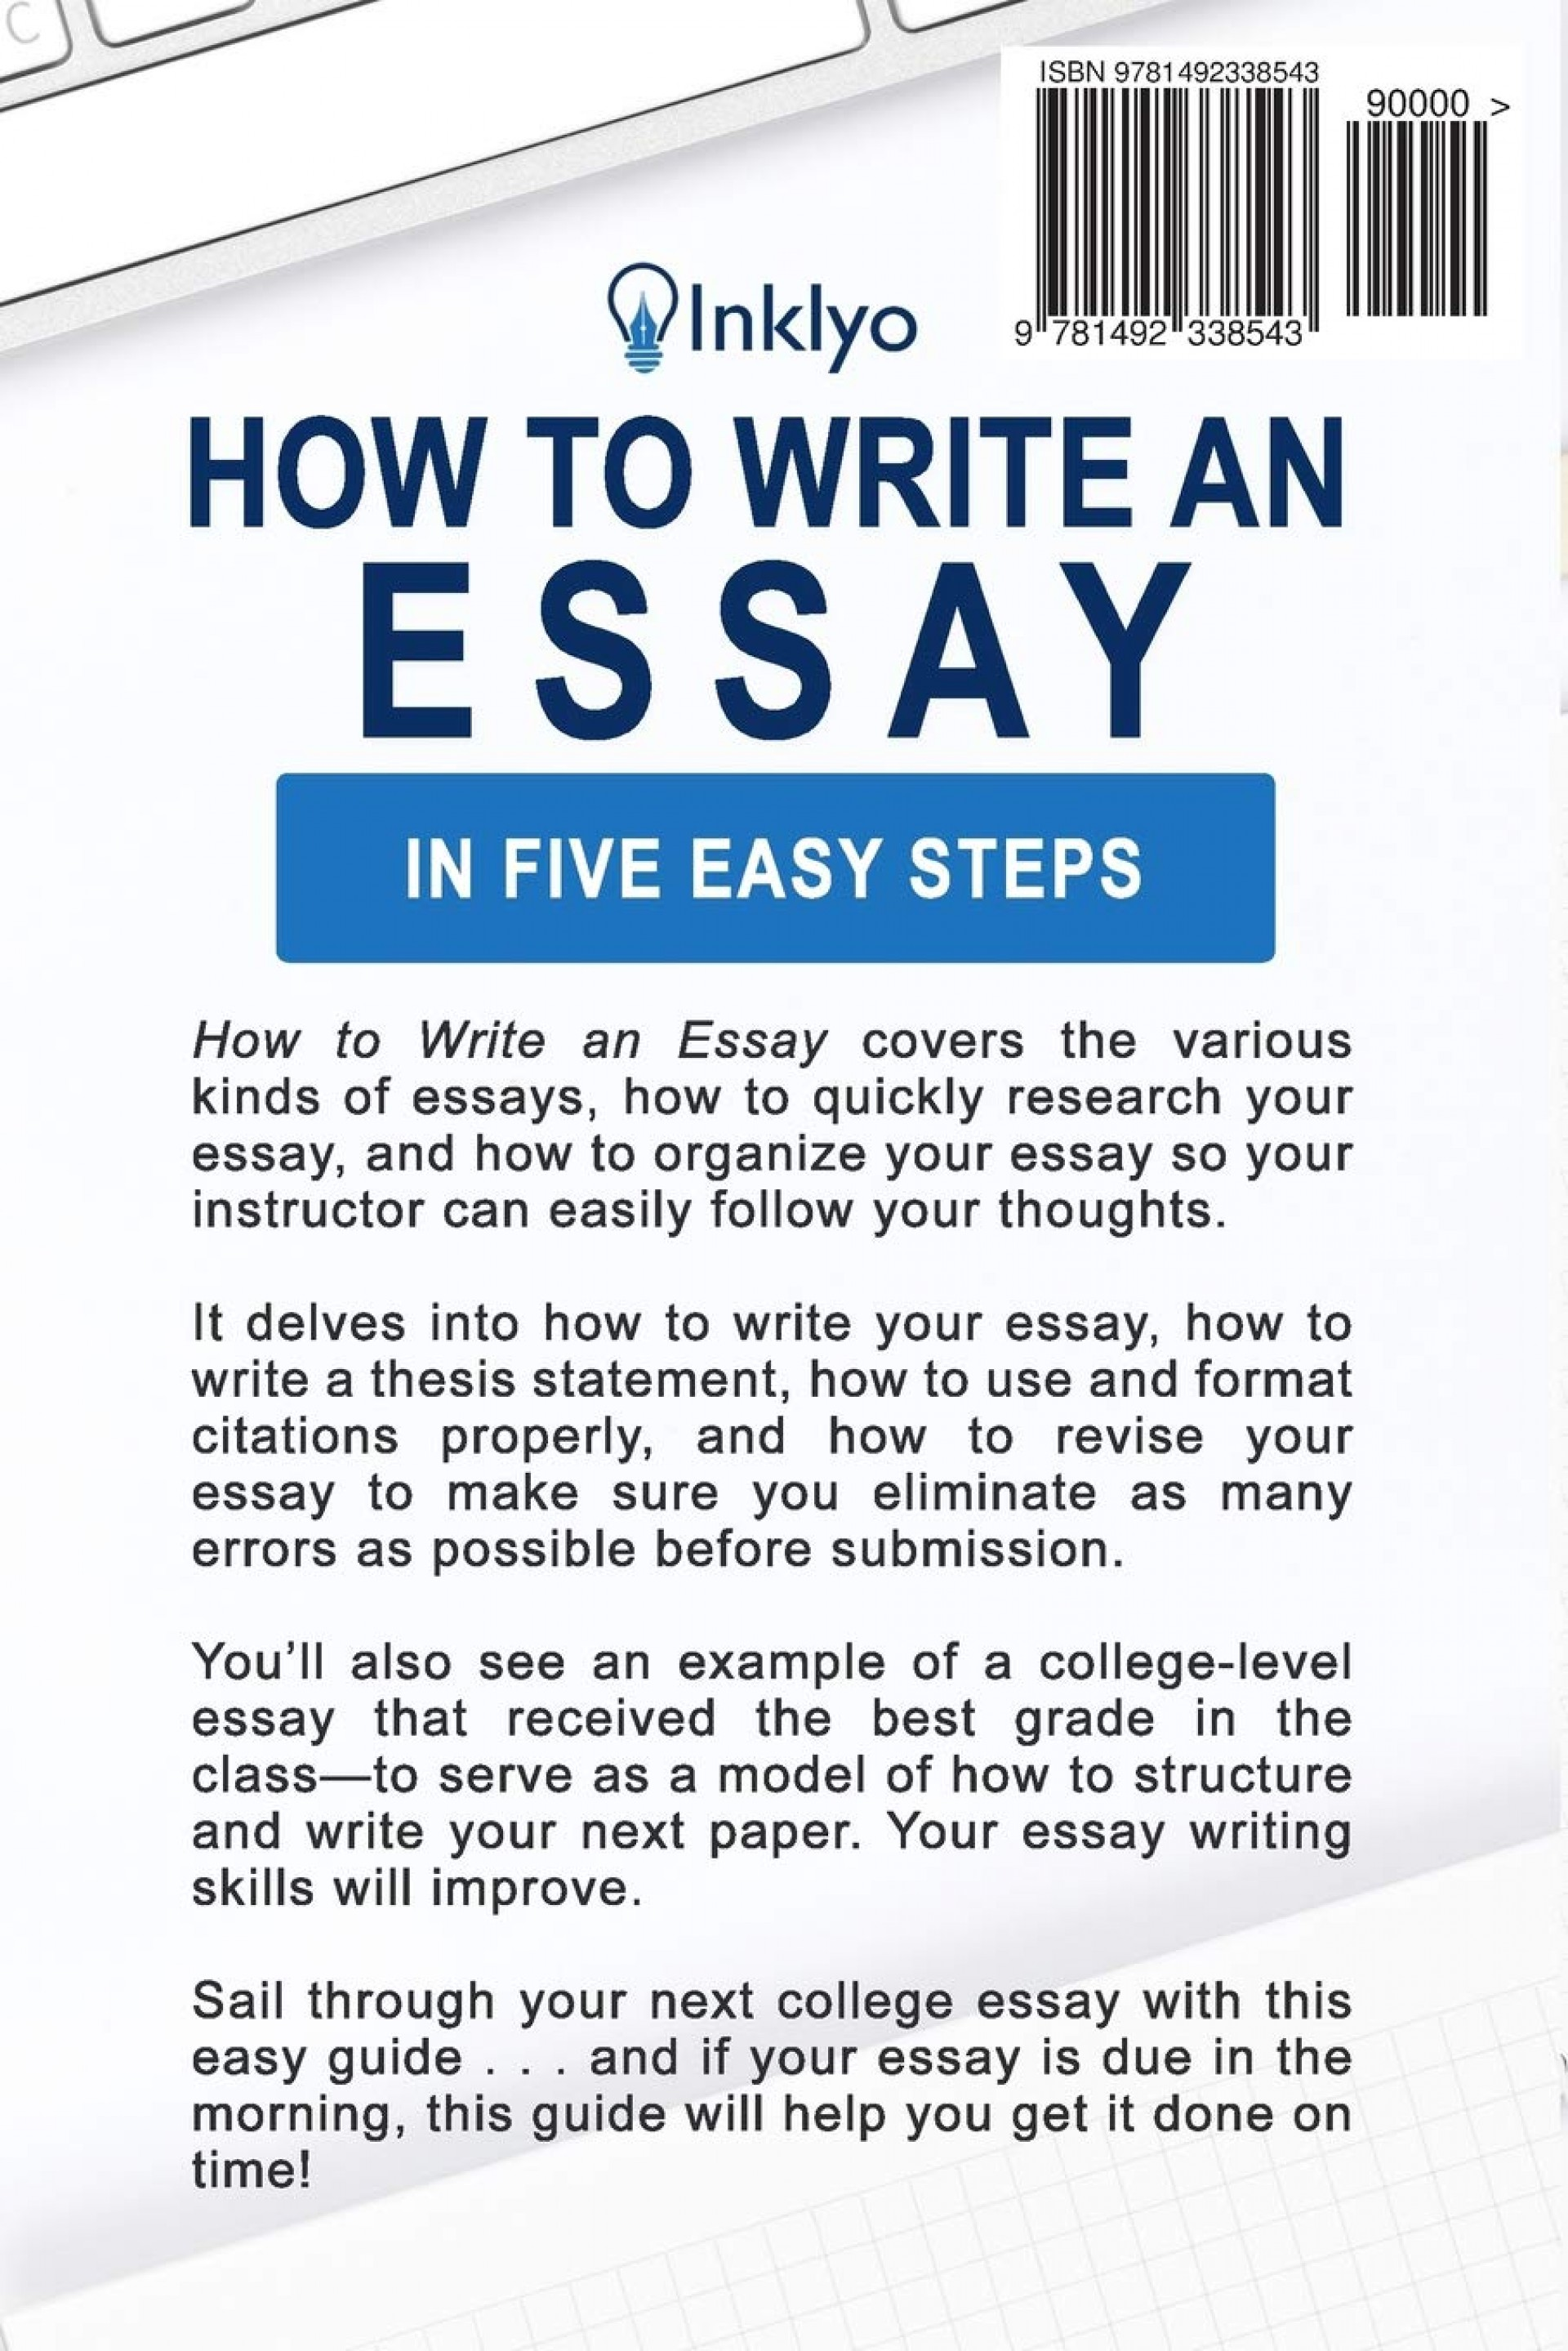 004 Essay Example How To Write And Unique An Conclusion University Level Outline For College Placement Test 1920